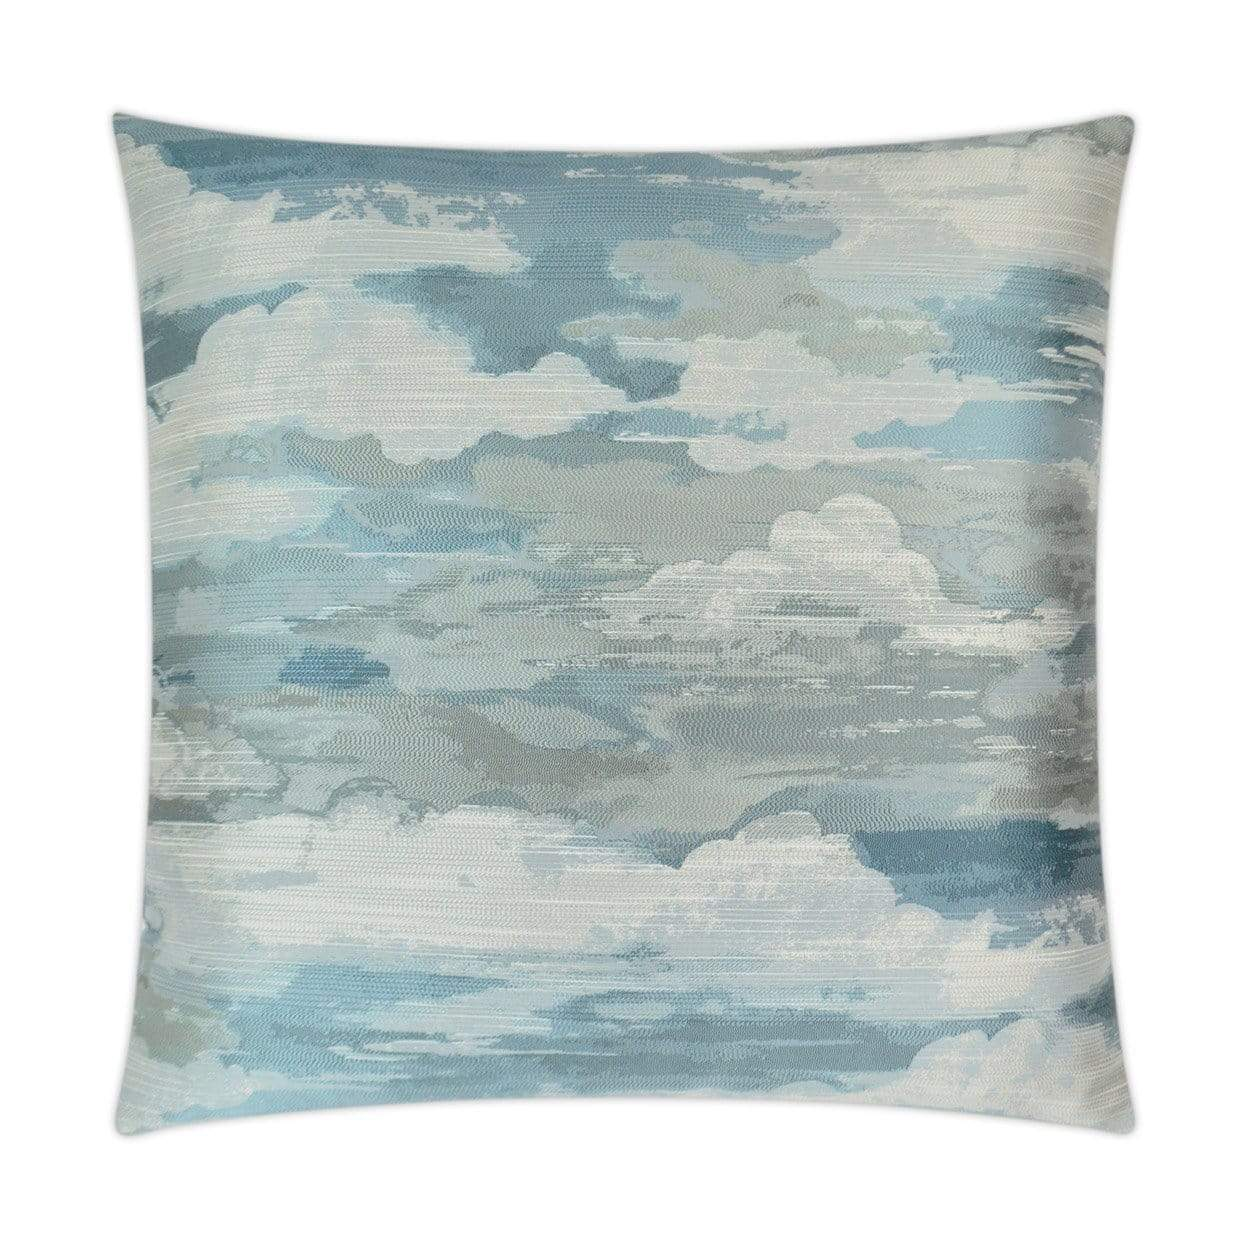 D.V. Kap D.V. Kap Above The Clouds Pillow 3284